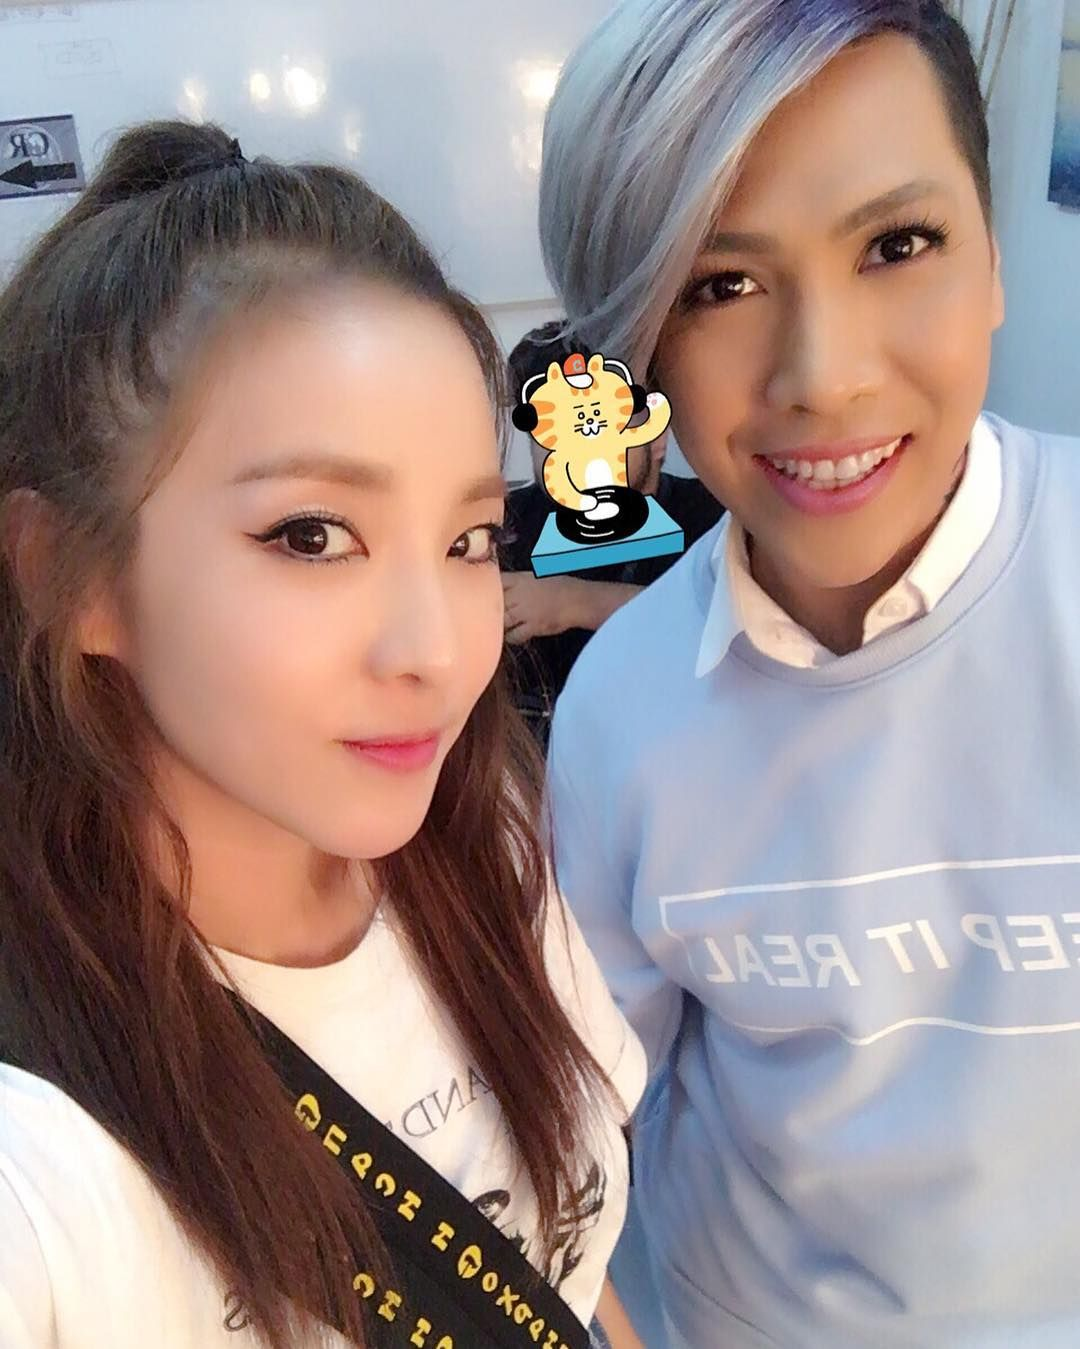 sandara park of 2ne1 with filipino celebrity vice ganda | 2ne1